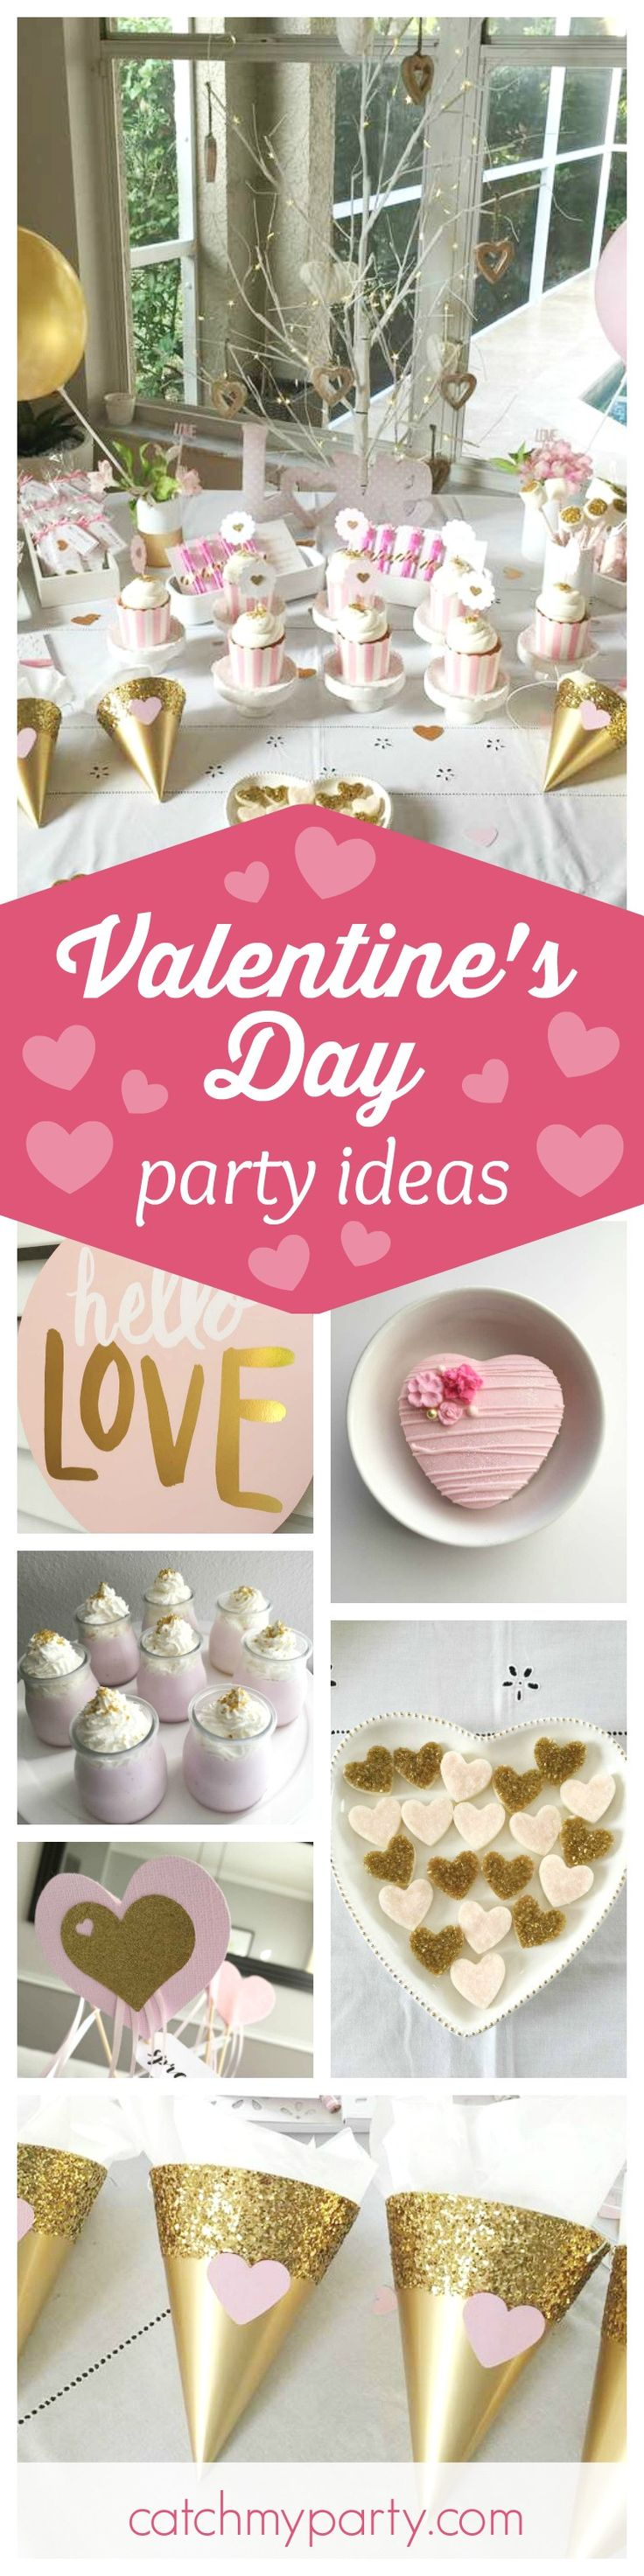 766 best images about Valentine's Day Party Ideas on Pinterest